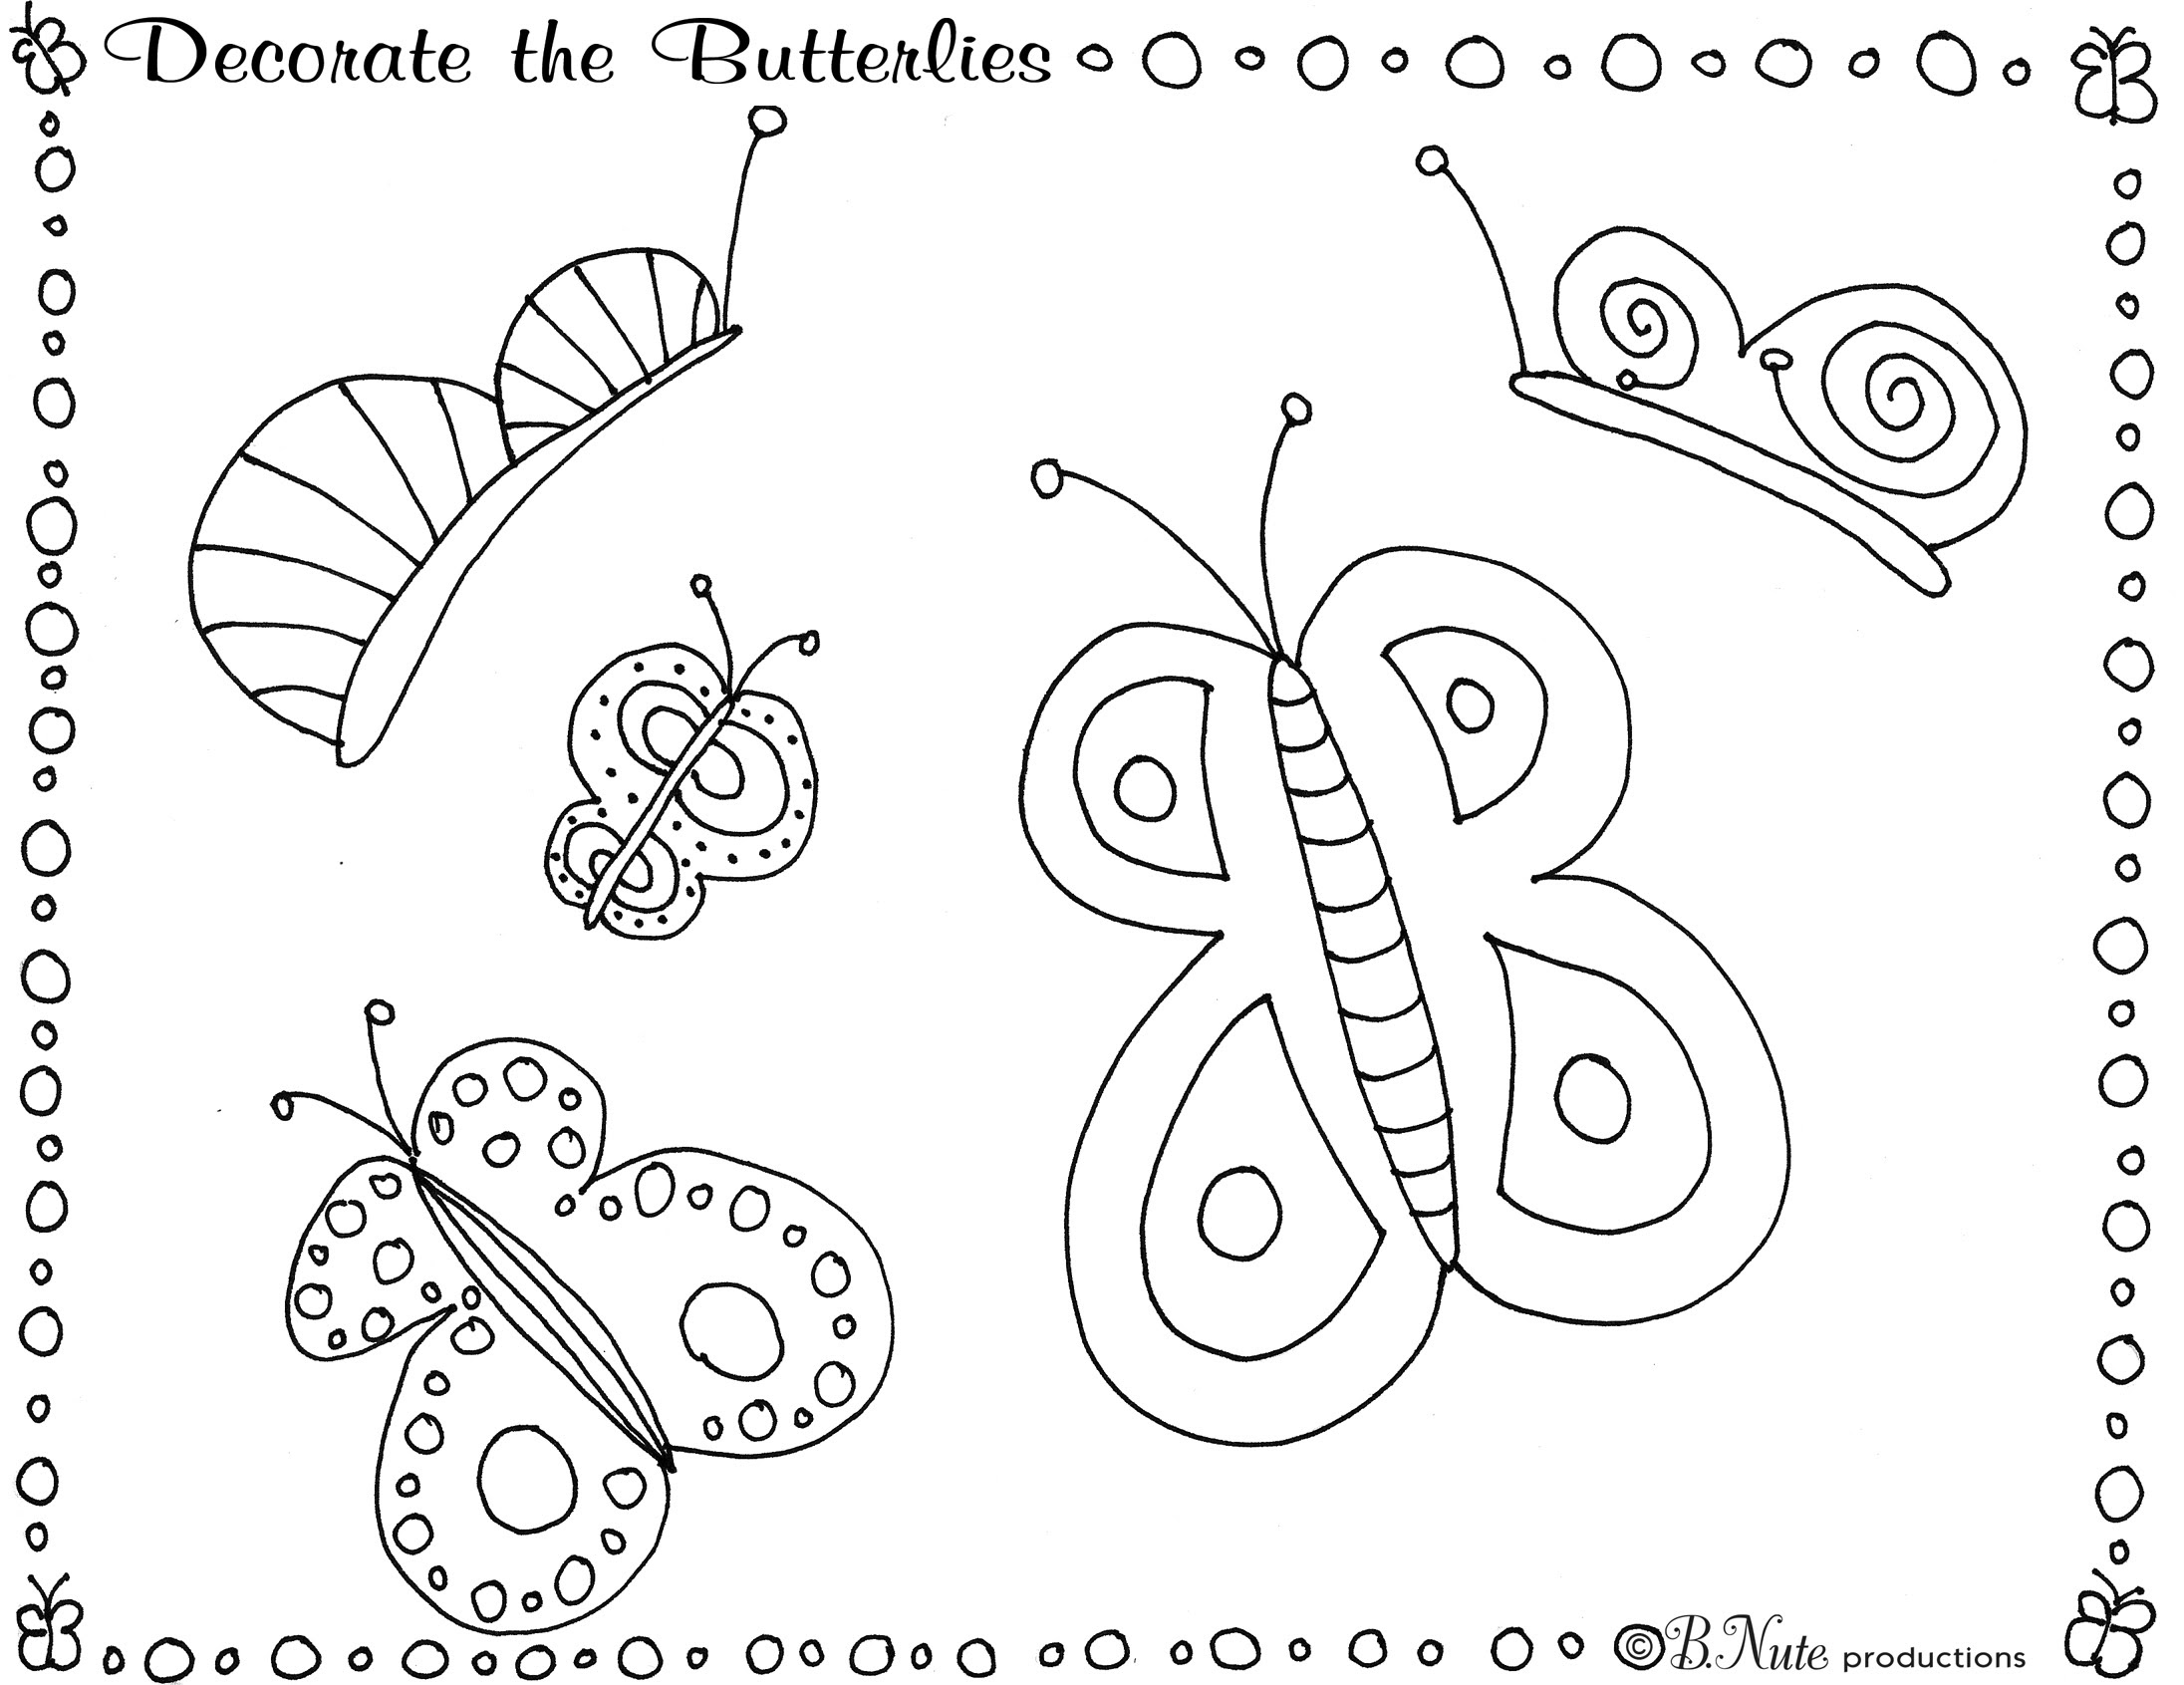 bnute productions: Butterfly Party Game and Art Ideas ...